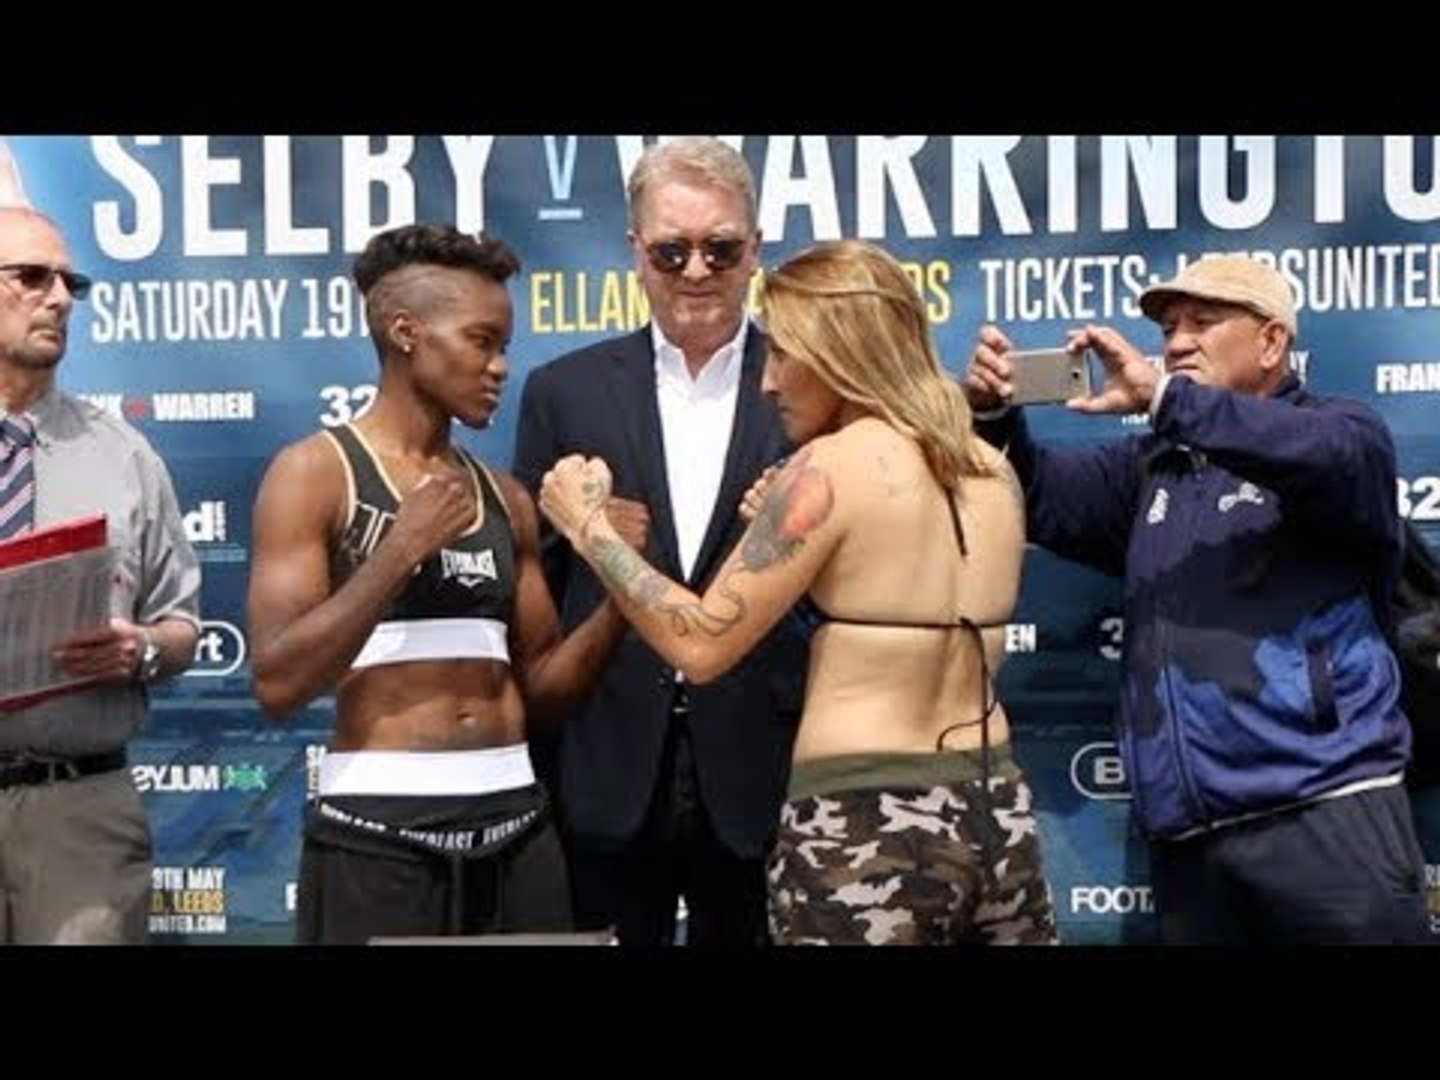 THE LIONESS RETURNS TO LEEDS!  - NICOLA ADAMS OBE v SOLEDAD DEL VALLE FRIAS - OFFICIAL WEIGH IN